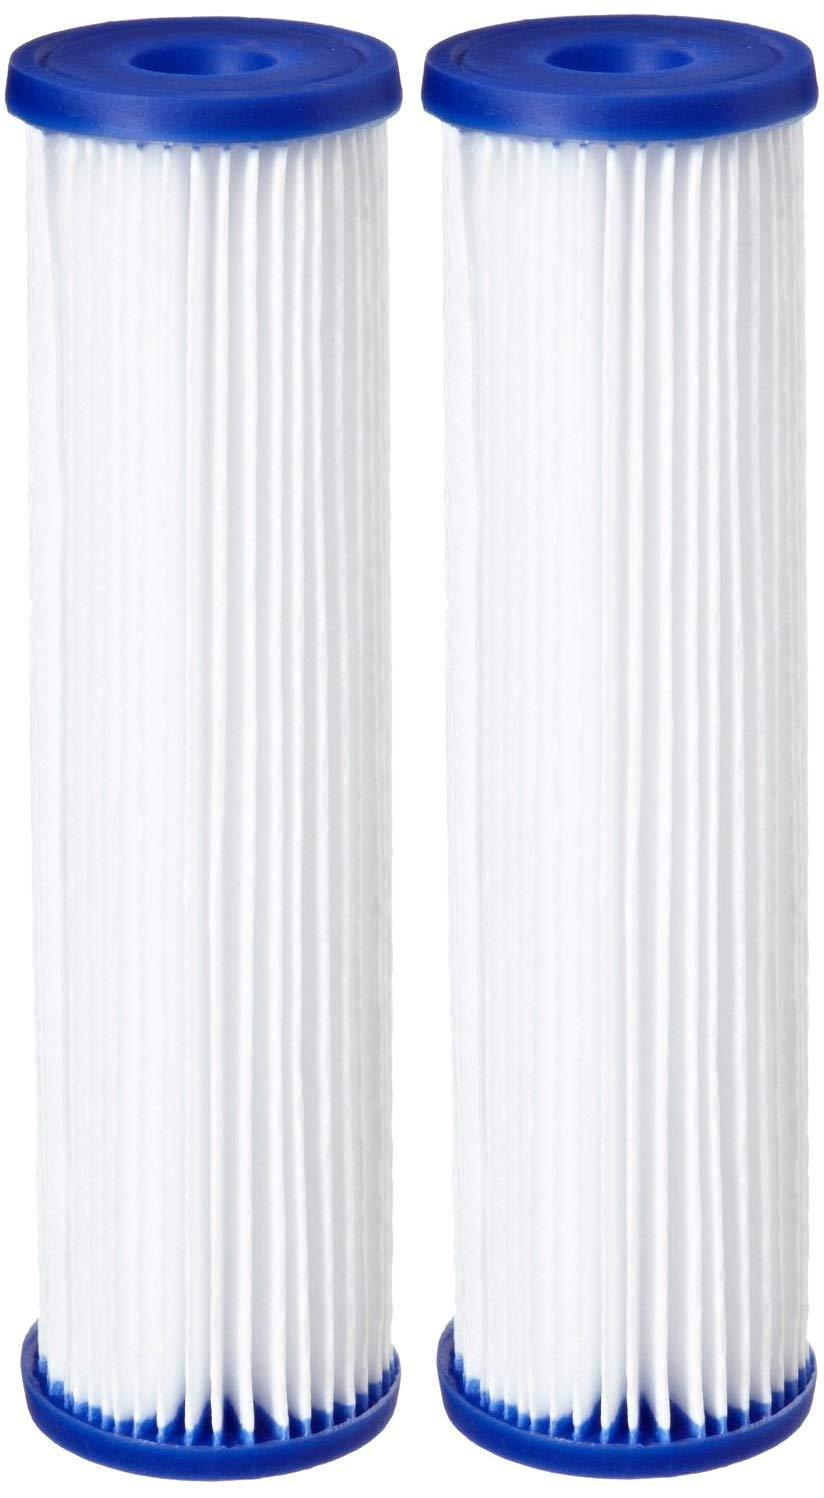 Pentek R30-20BB Pleated Polyester Filter Cartridge, 20'' x 4-1/2'', 30 Microns (Pack of 2) by Pentek